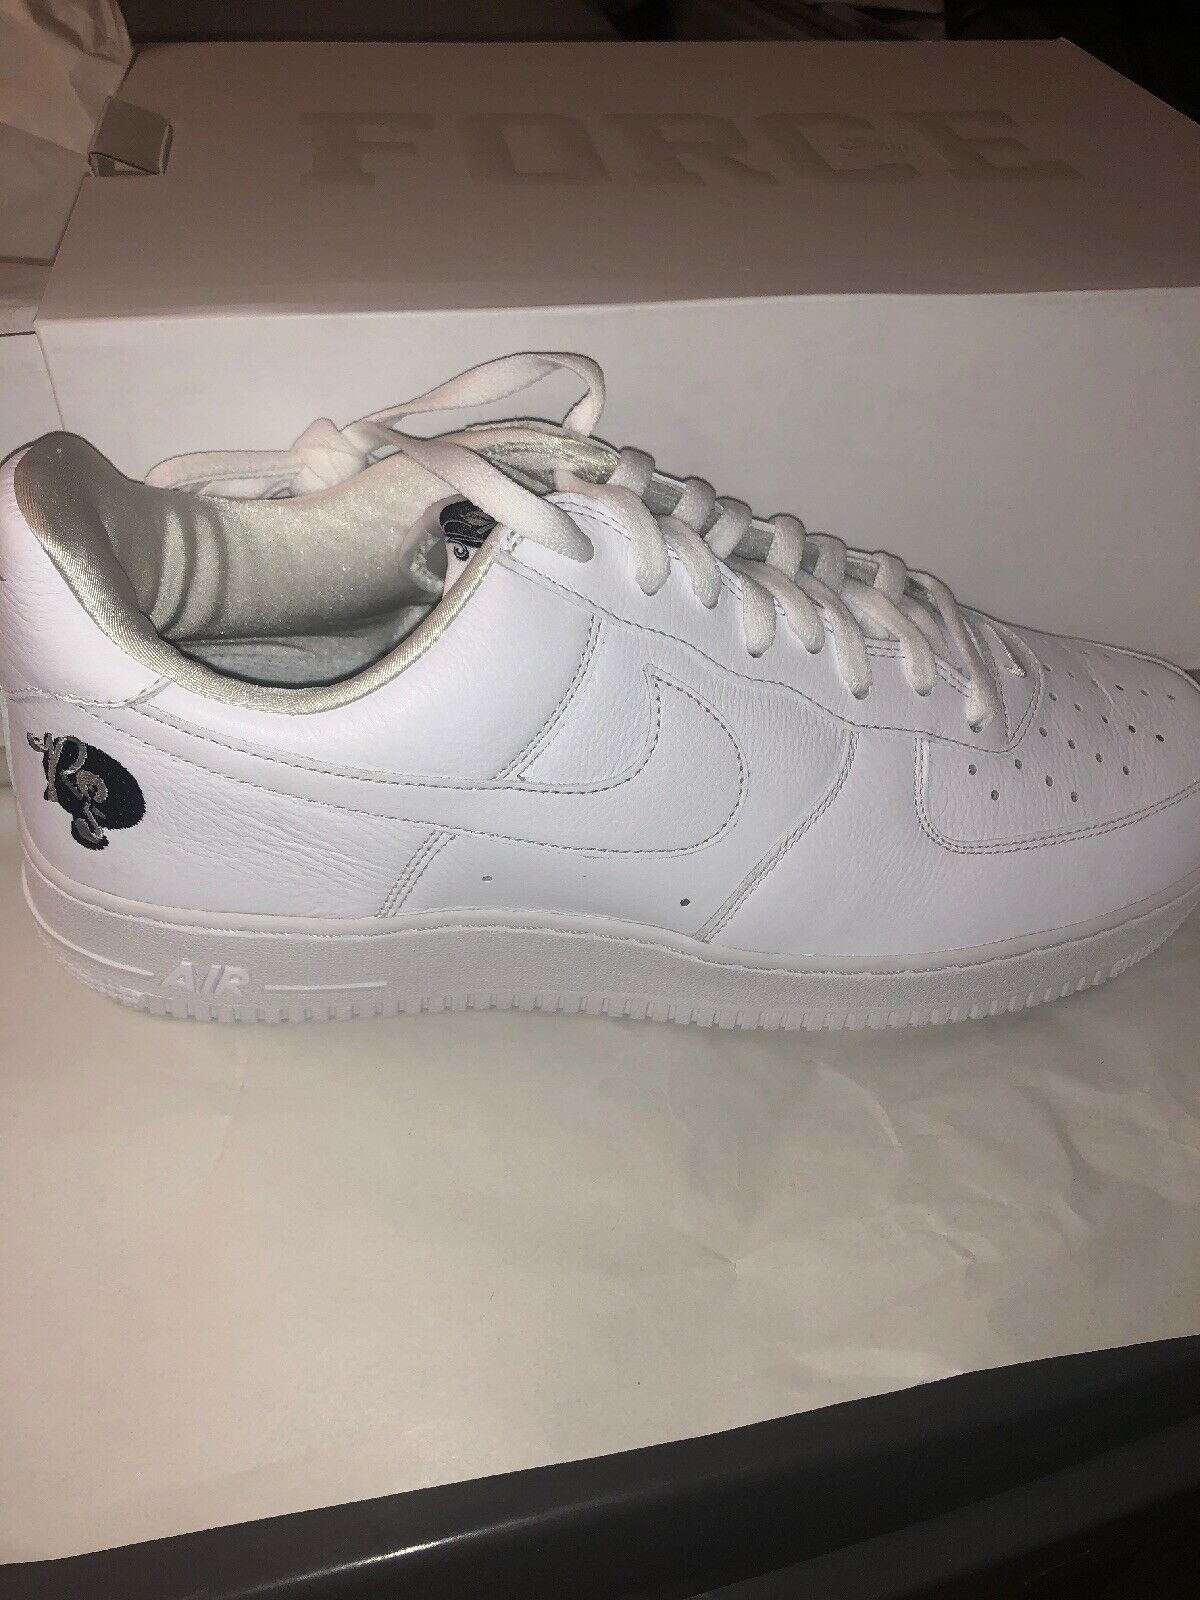 Nike Air Force 1 '07 Rocafella Size 14